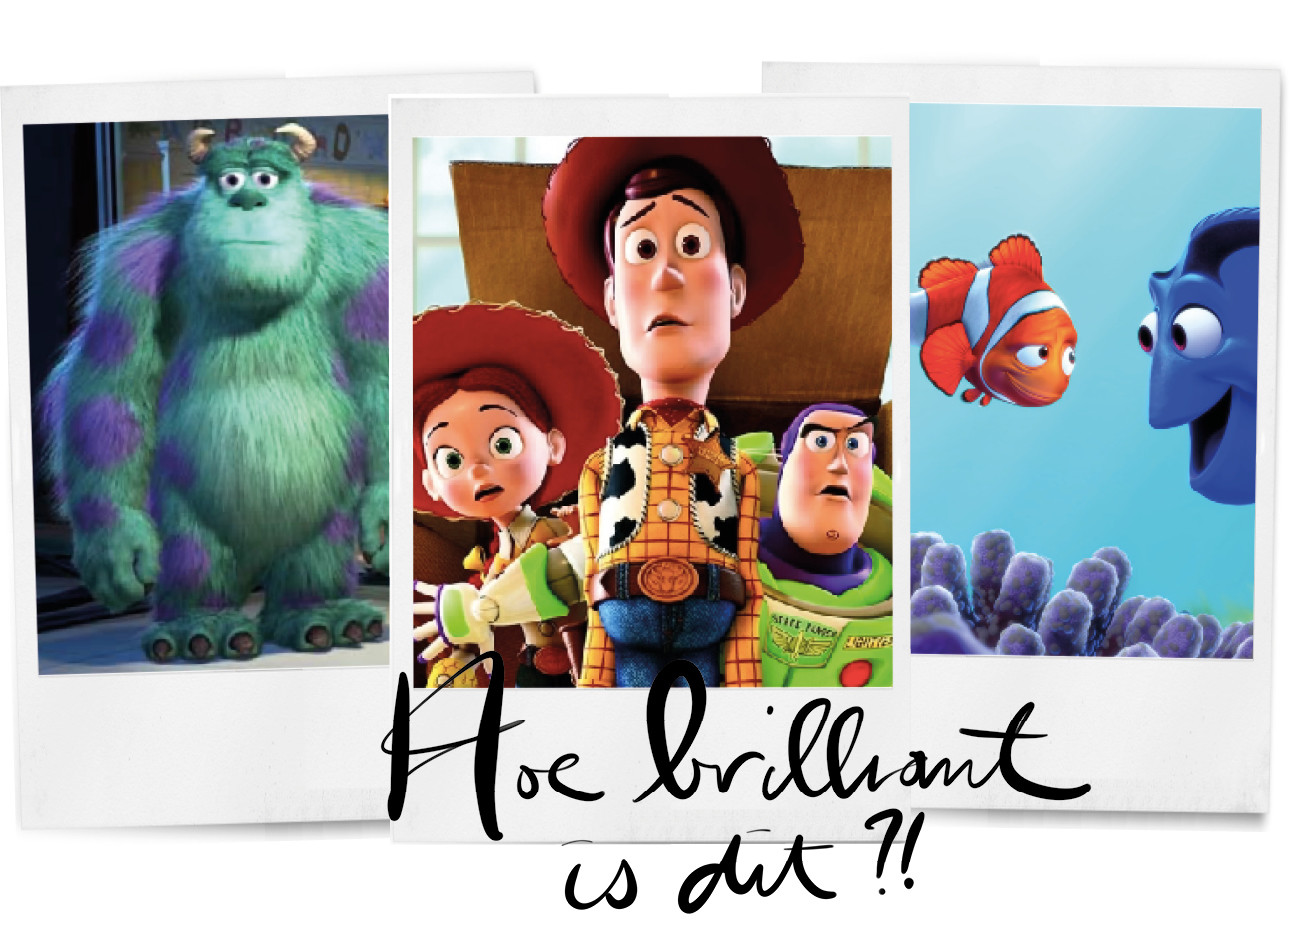 polaroids disney pixar monsters inc toy story 3 finding nemo hoe brilliant is dit?